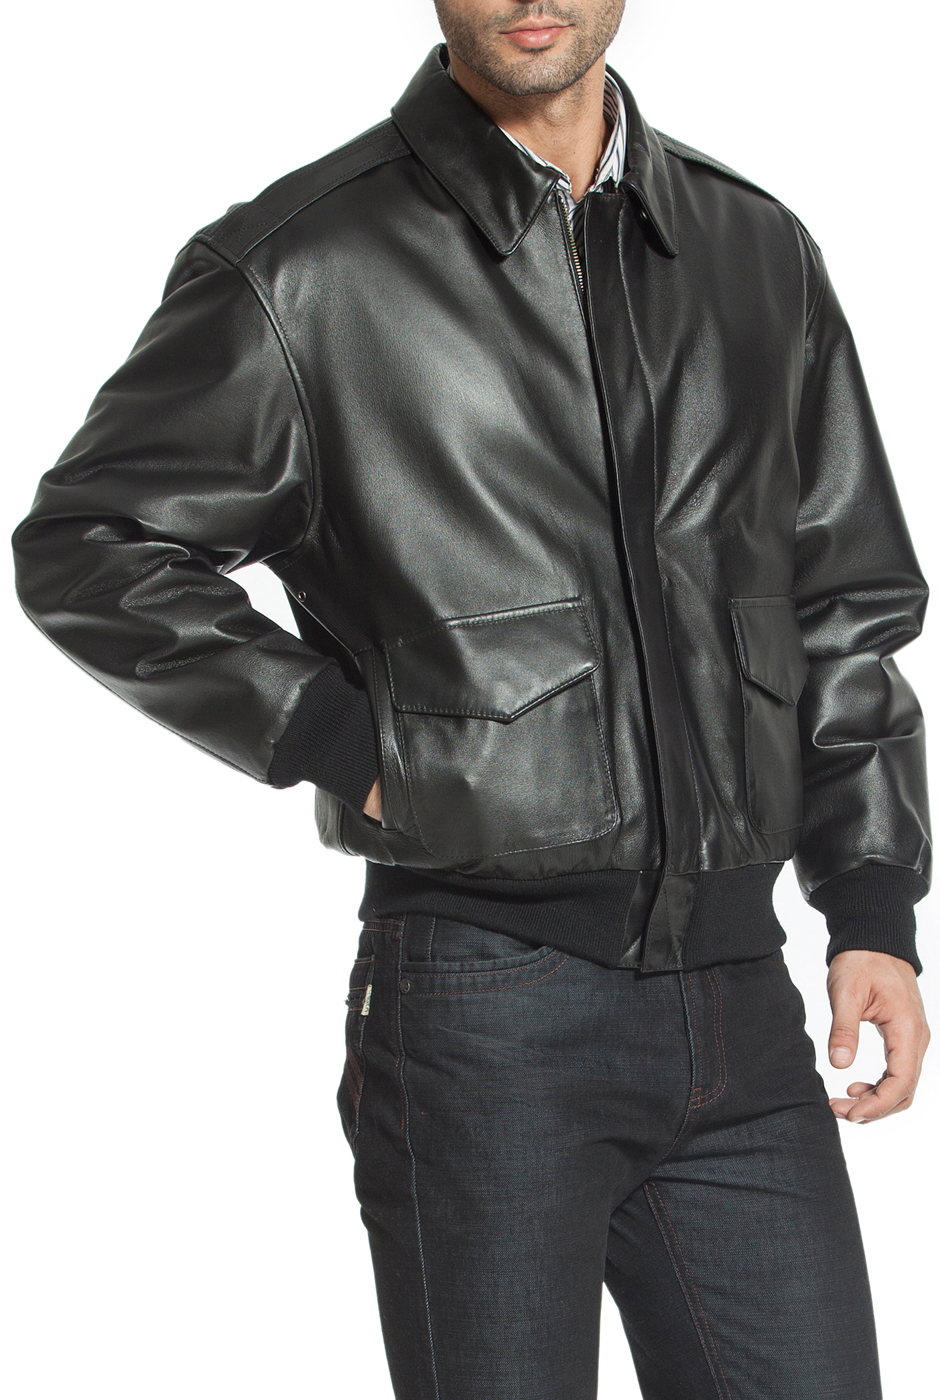 landing-leathers-mens-air-force-jacket